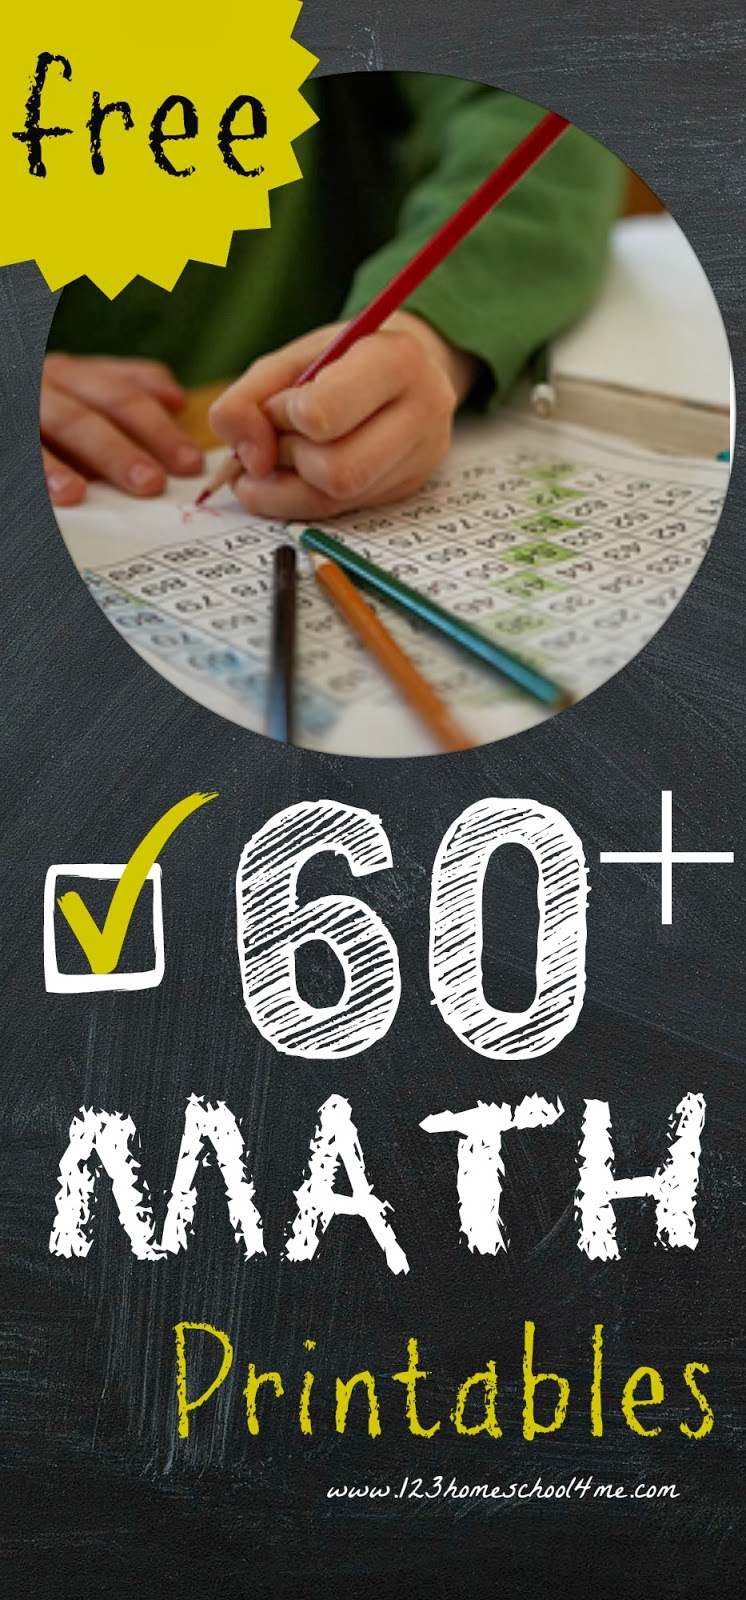 60+ Free Math Worksheets & Games for Preschool-4th Grade covering addition, subtraction, multiplication, division, place value, and more!